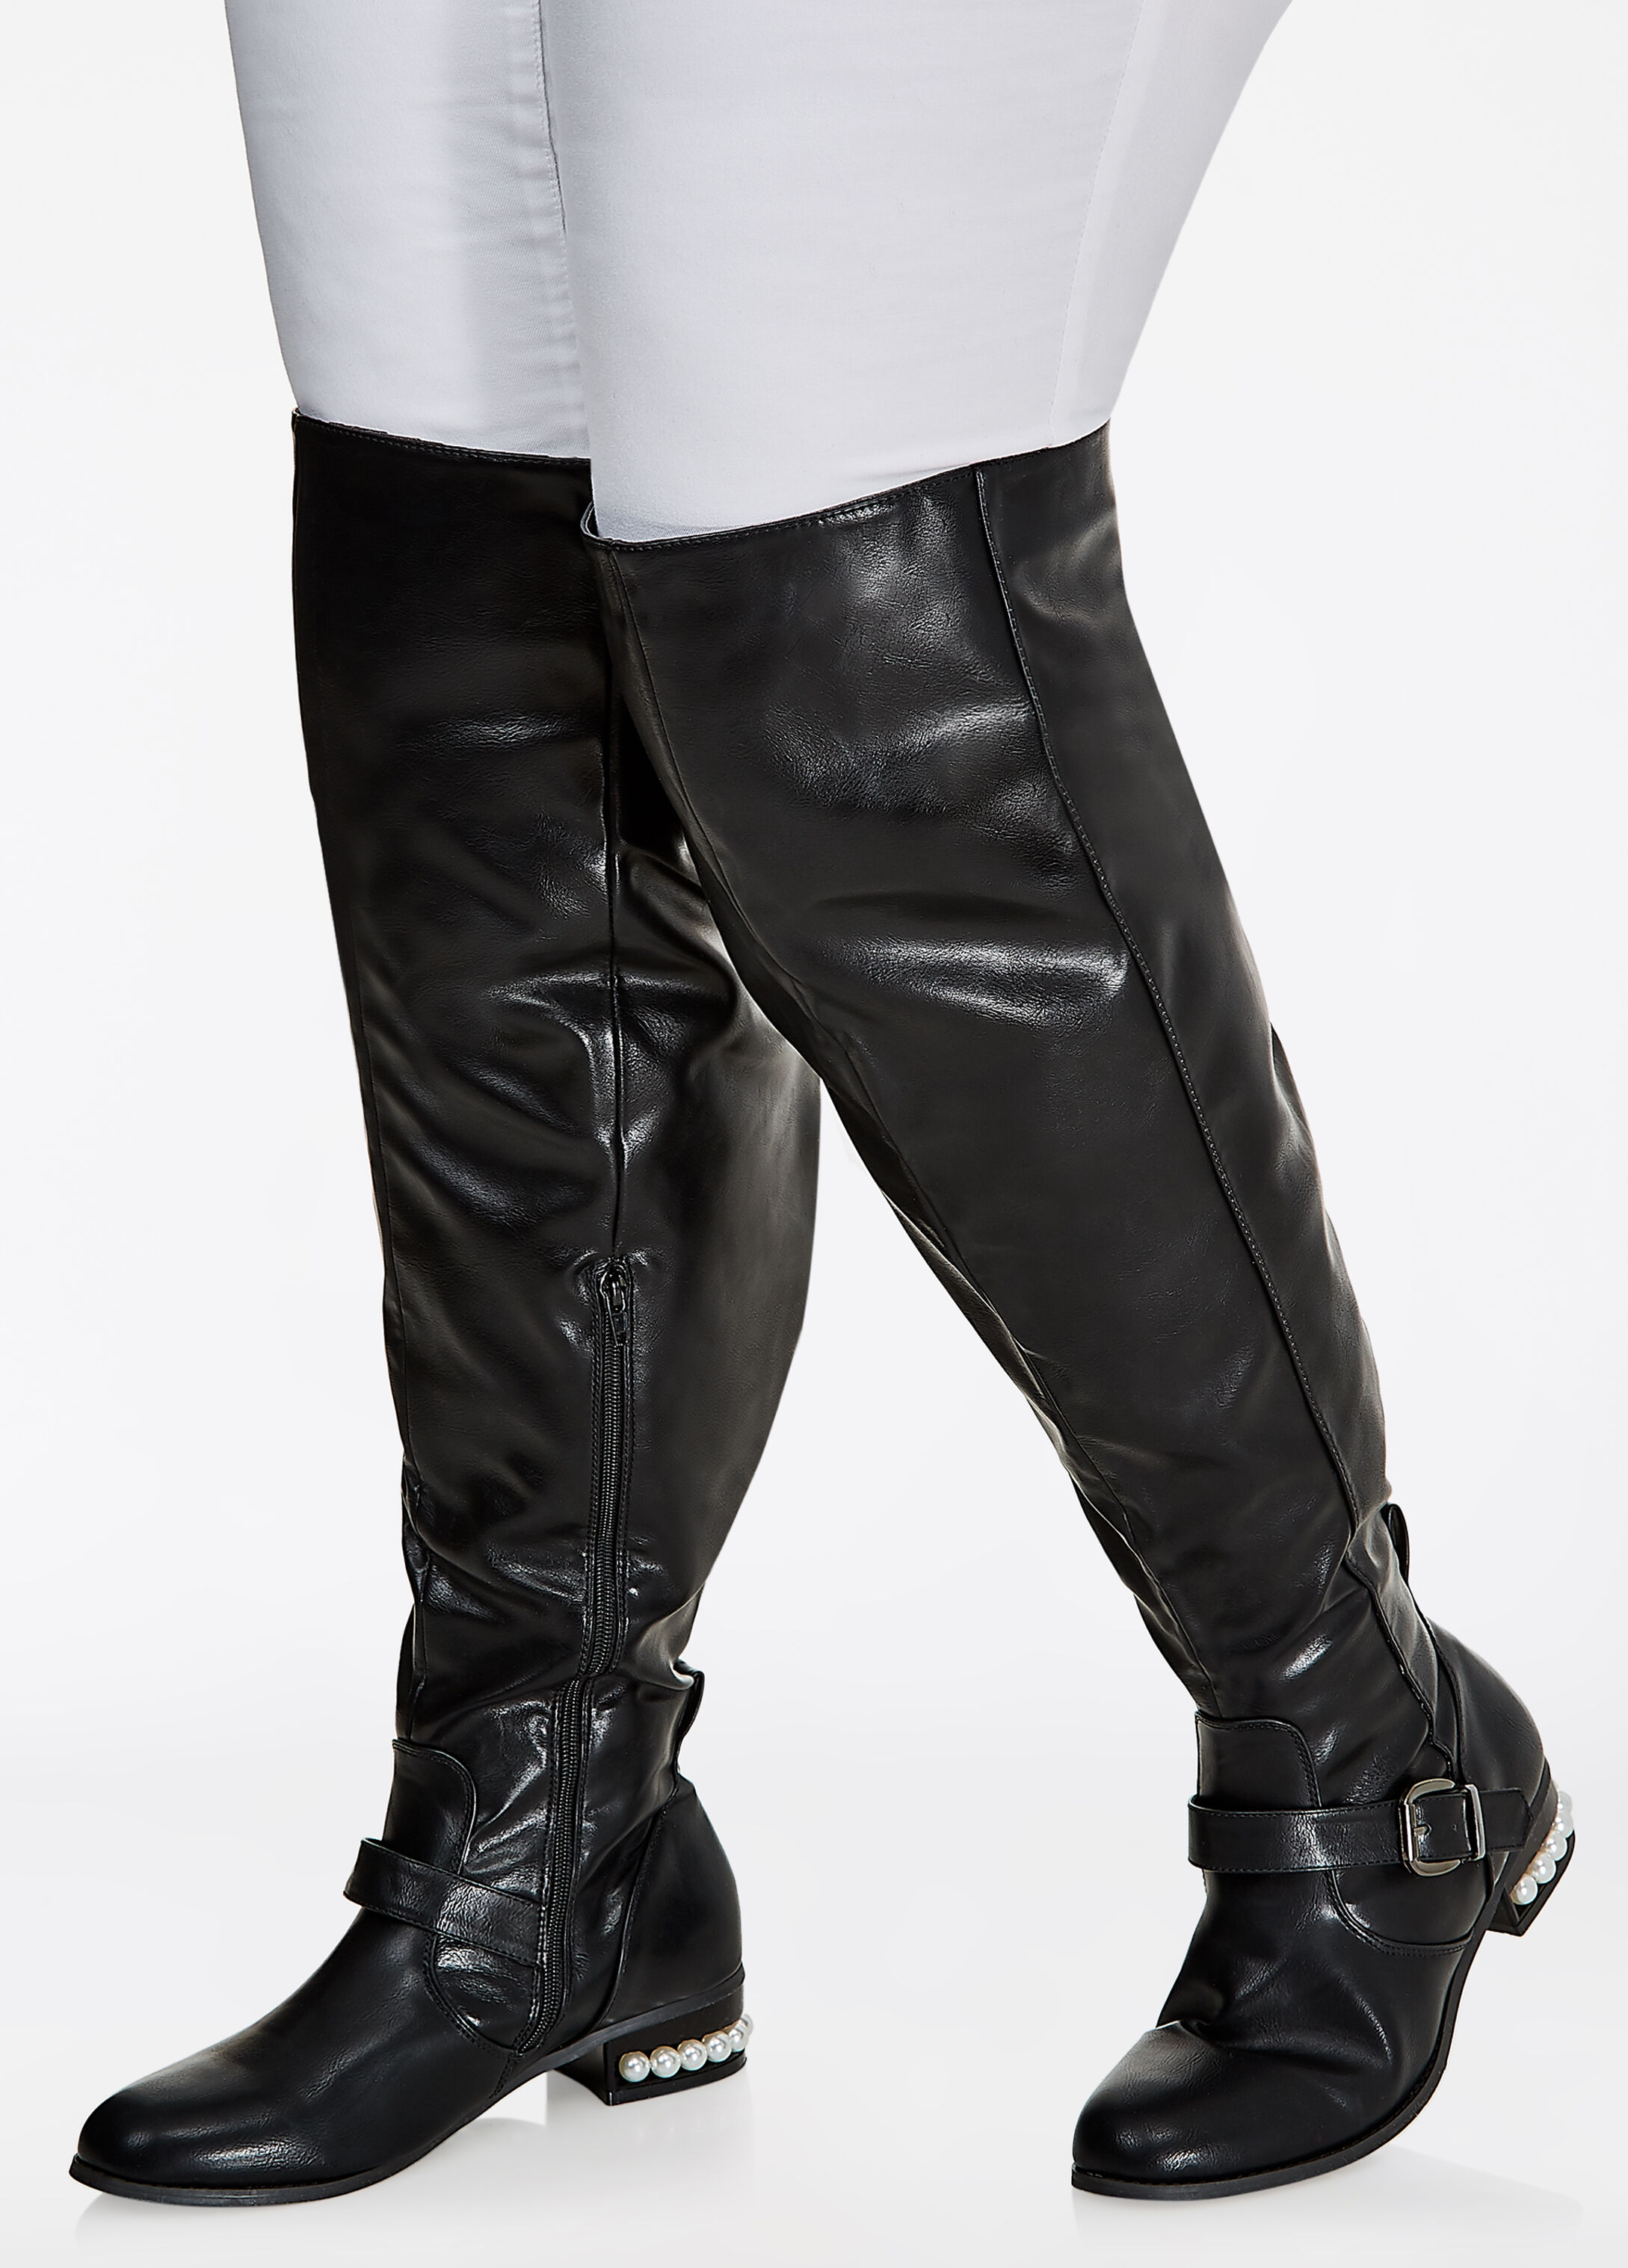 Over-Knee Pearl Flat Boot - Wide Width